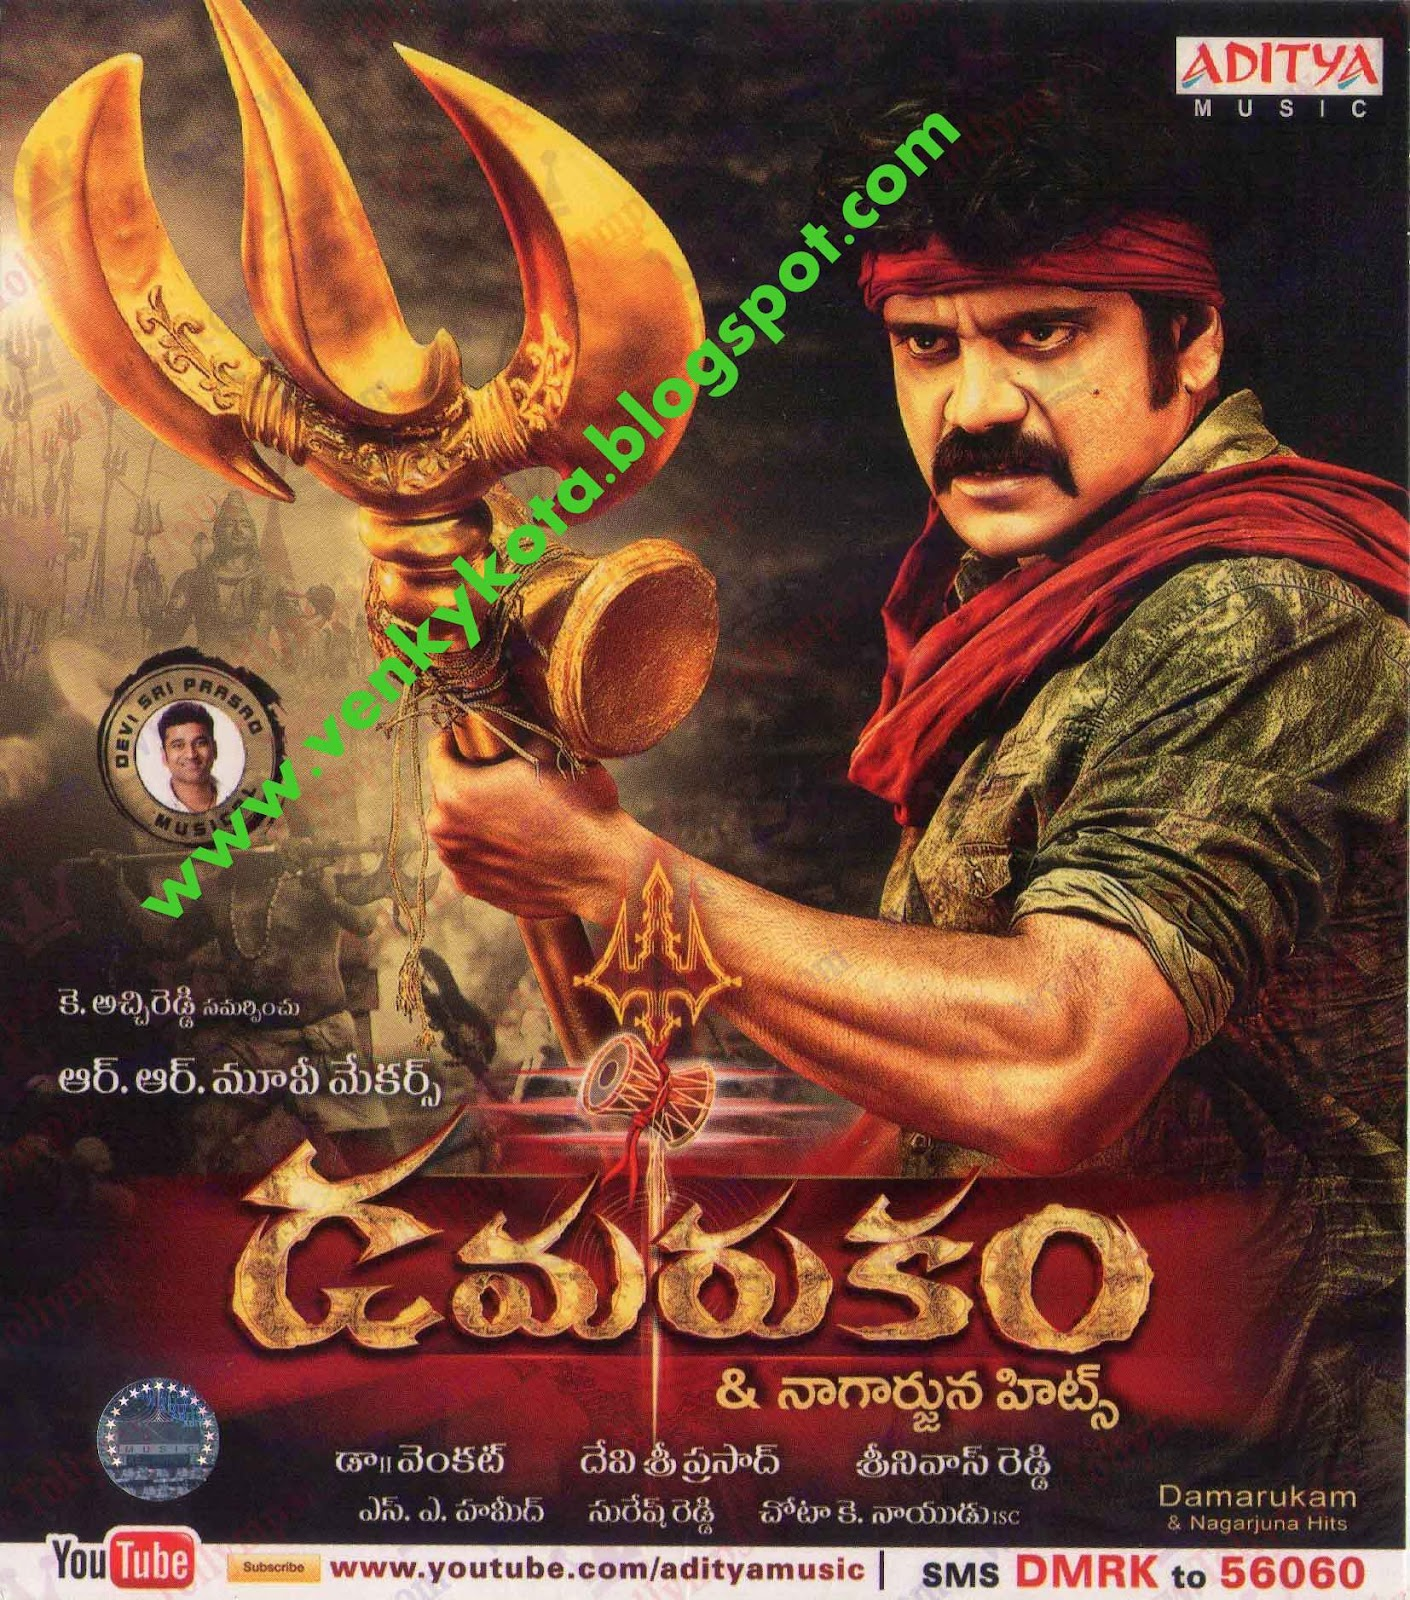 DAMARUKAM Movie Songs LYRICS - lyricbirds.blogspot.com